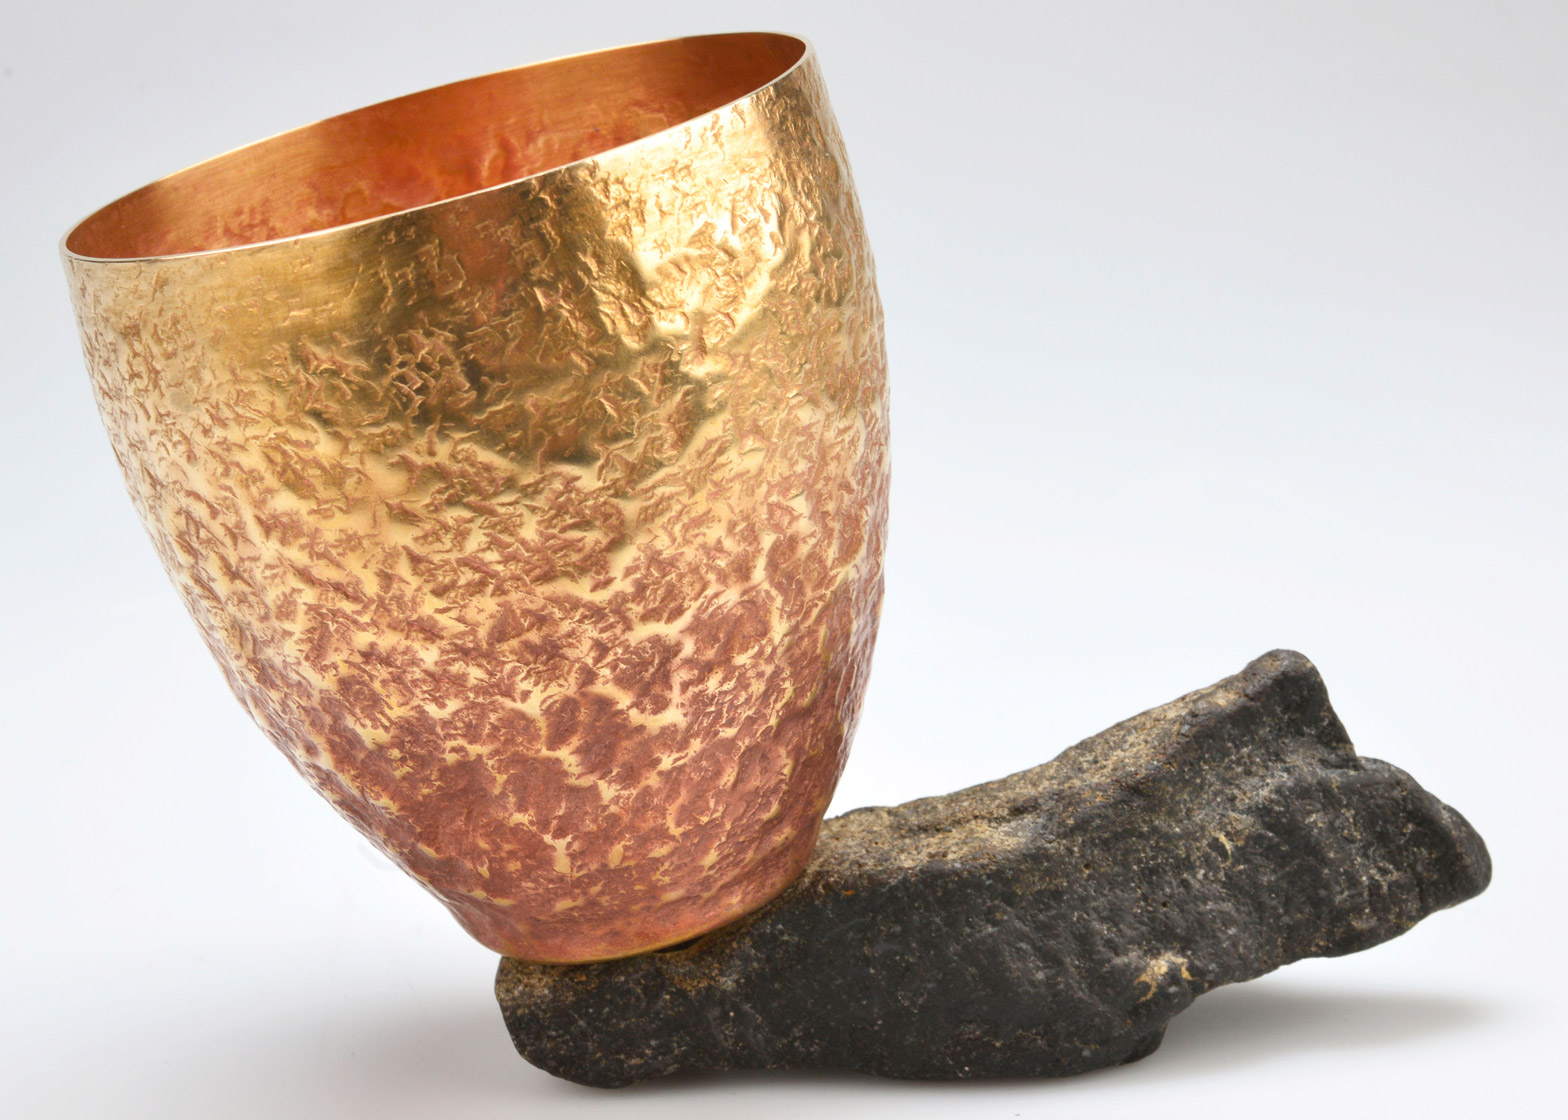 Spun and textured gilding metal vessel by Victoria Radcliffe